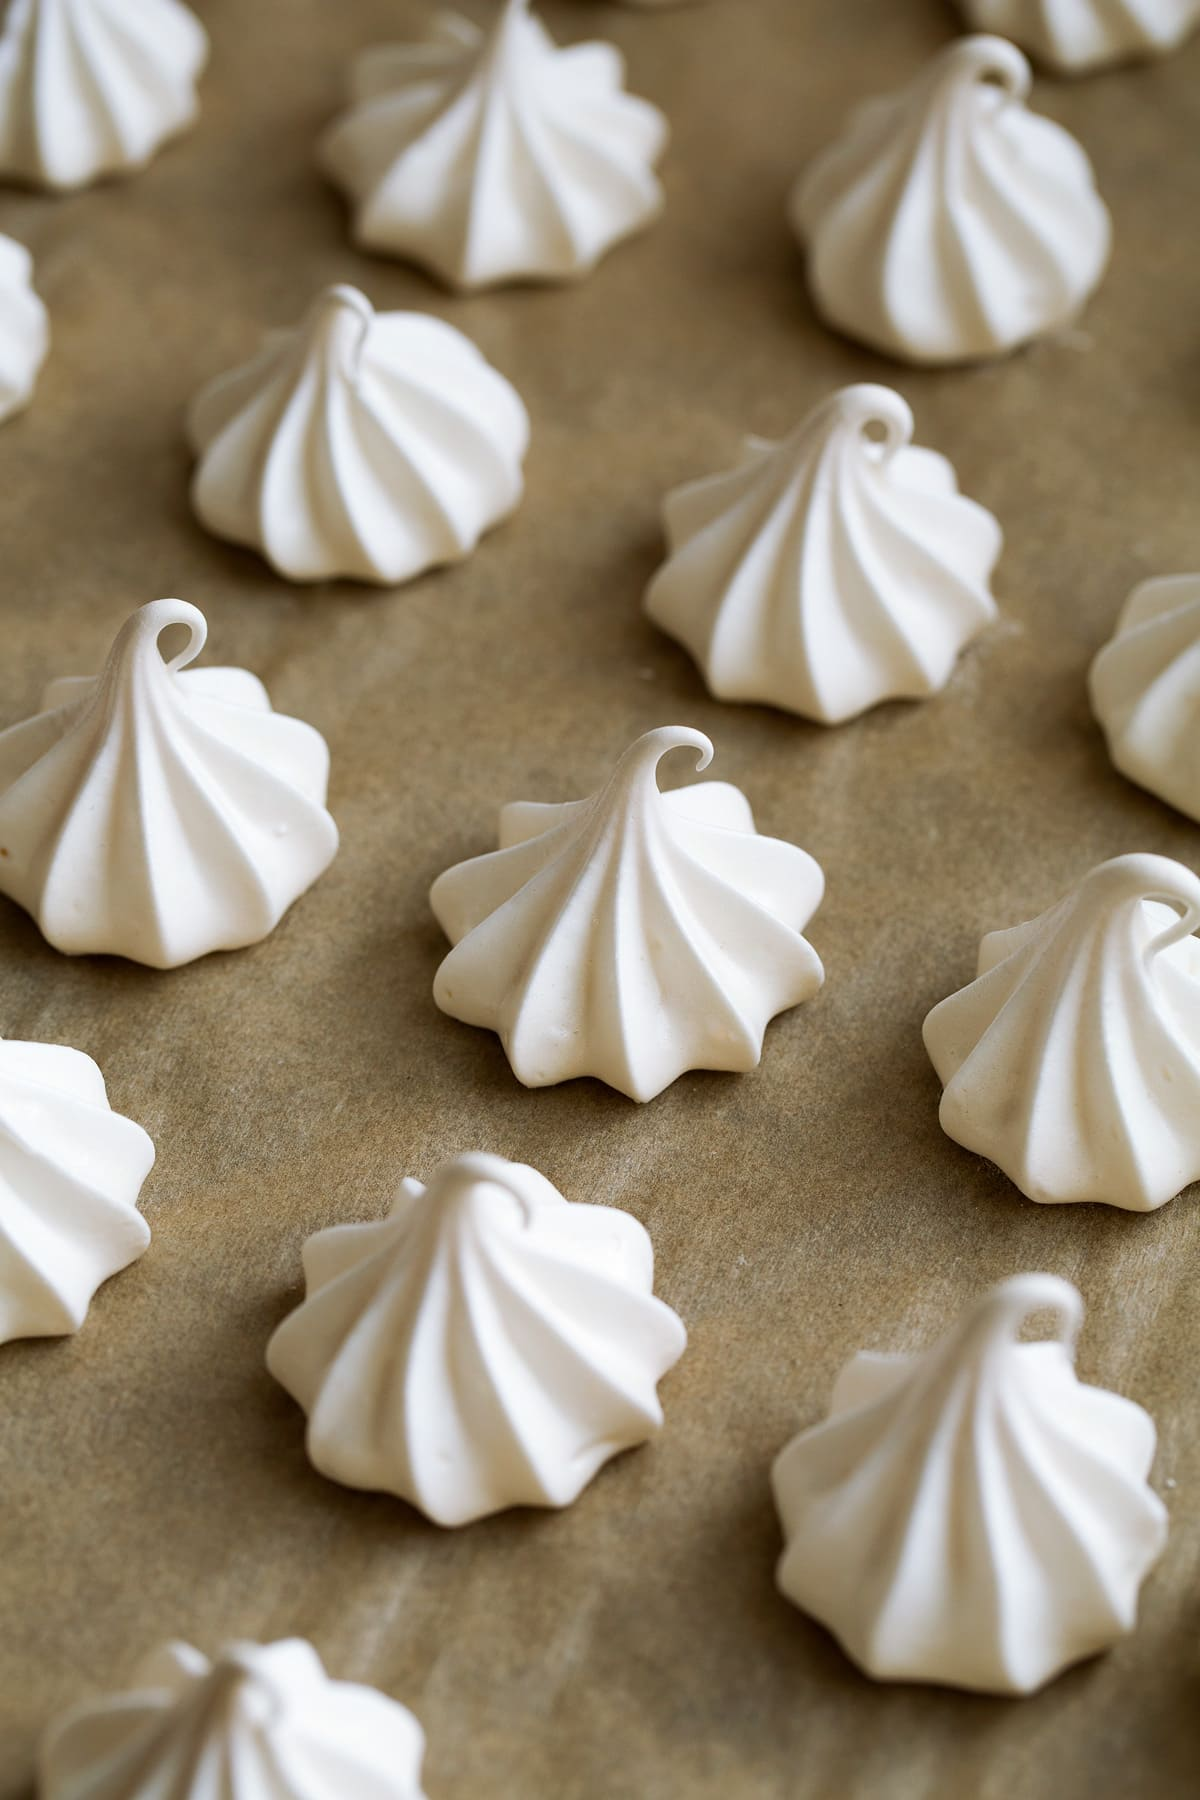 Meringue cookies on parchment paper on baking sheet shown after baking.